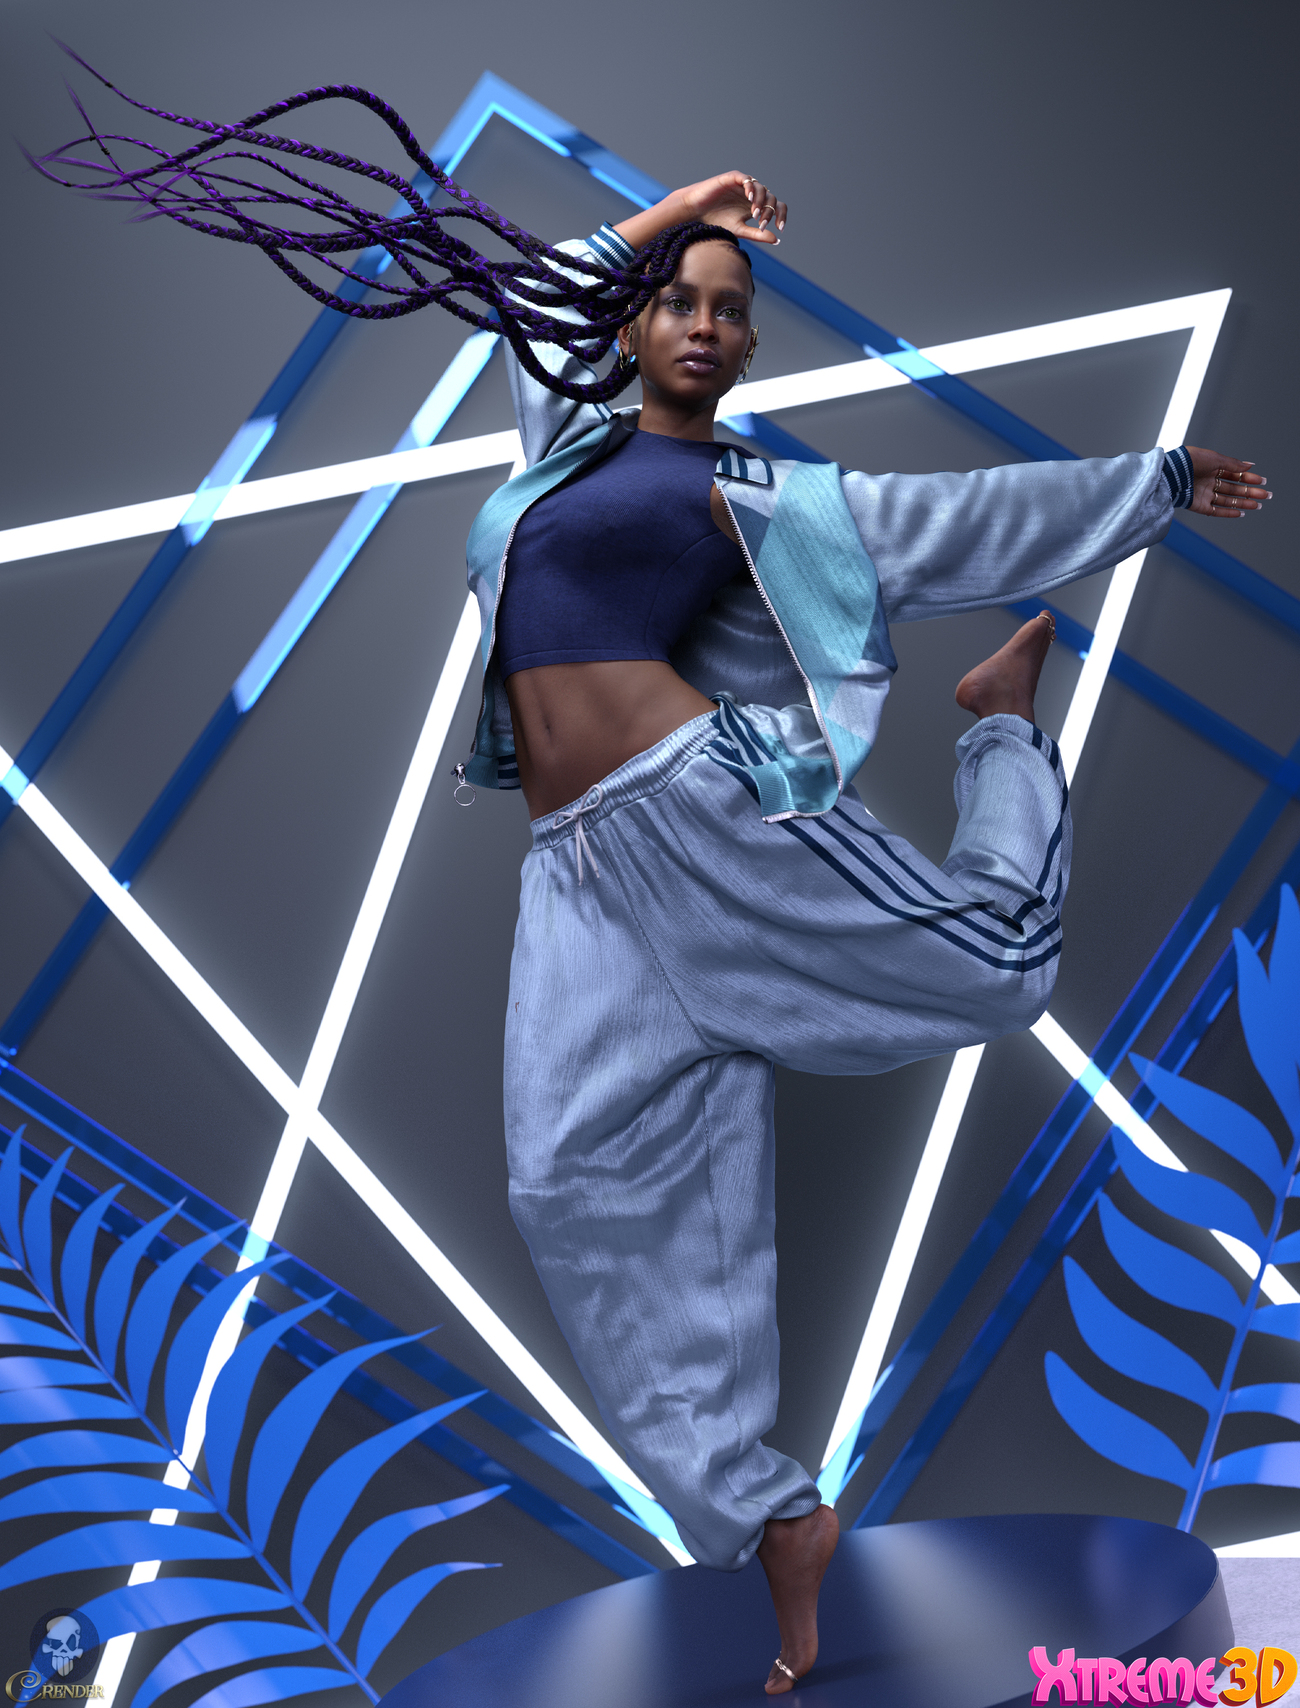 dForce Track Suit outfit for G8F 3 by crender